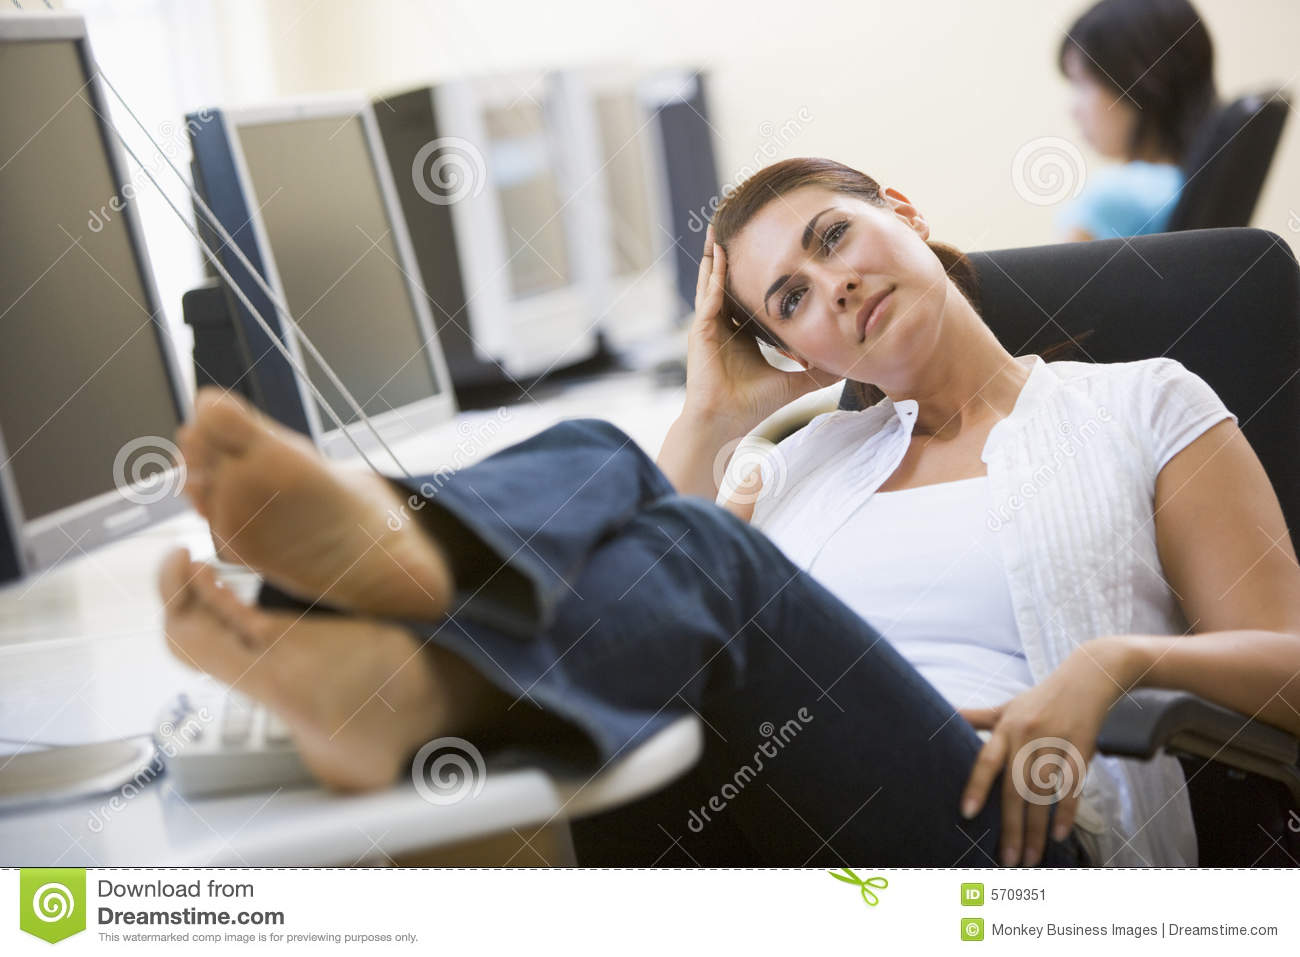 Woman In Computer Room With Feet Up Thinking Stock Image - Image